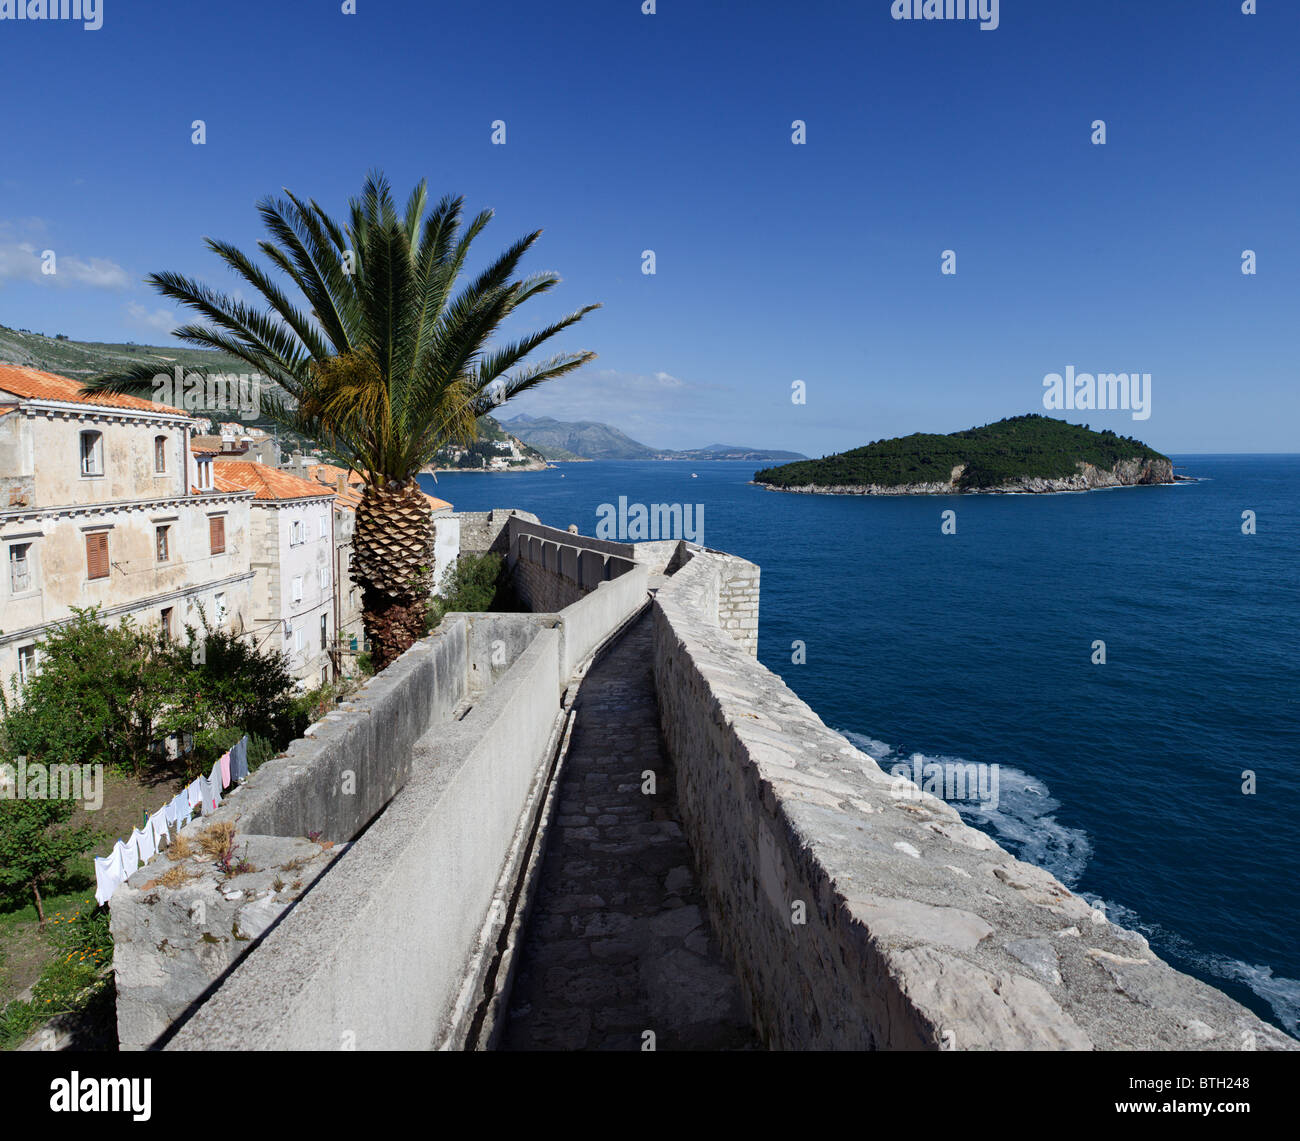 A walk along the walls of Dubrovnik's walled city - Stock Image